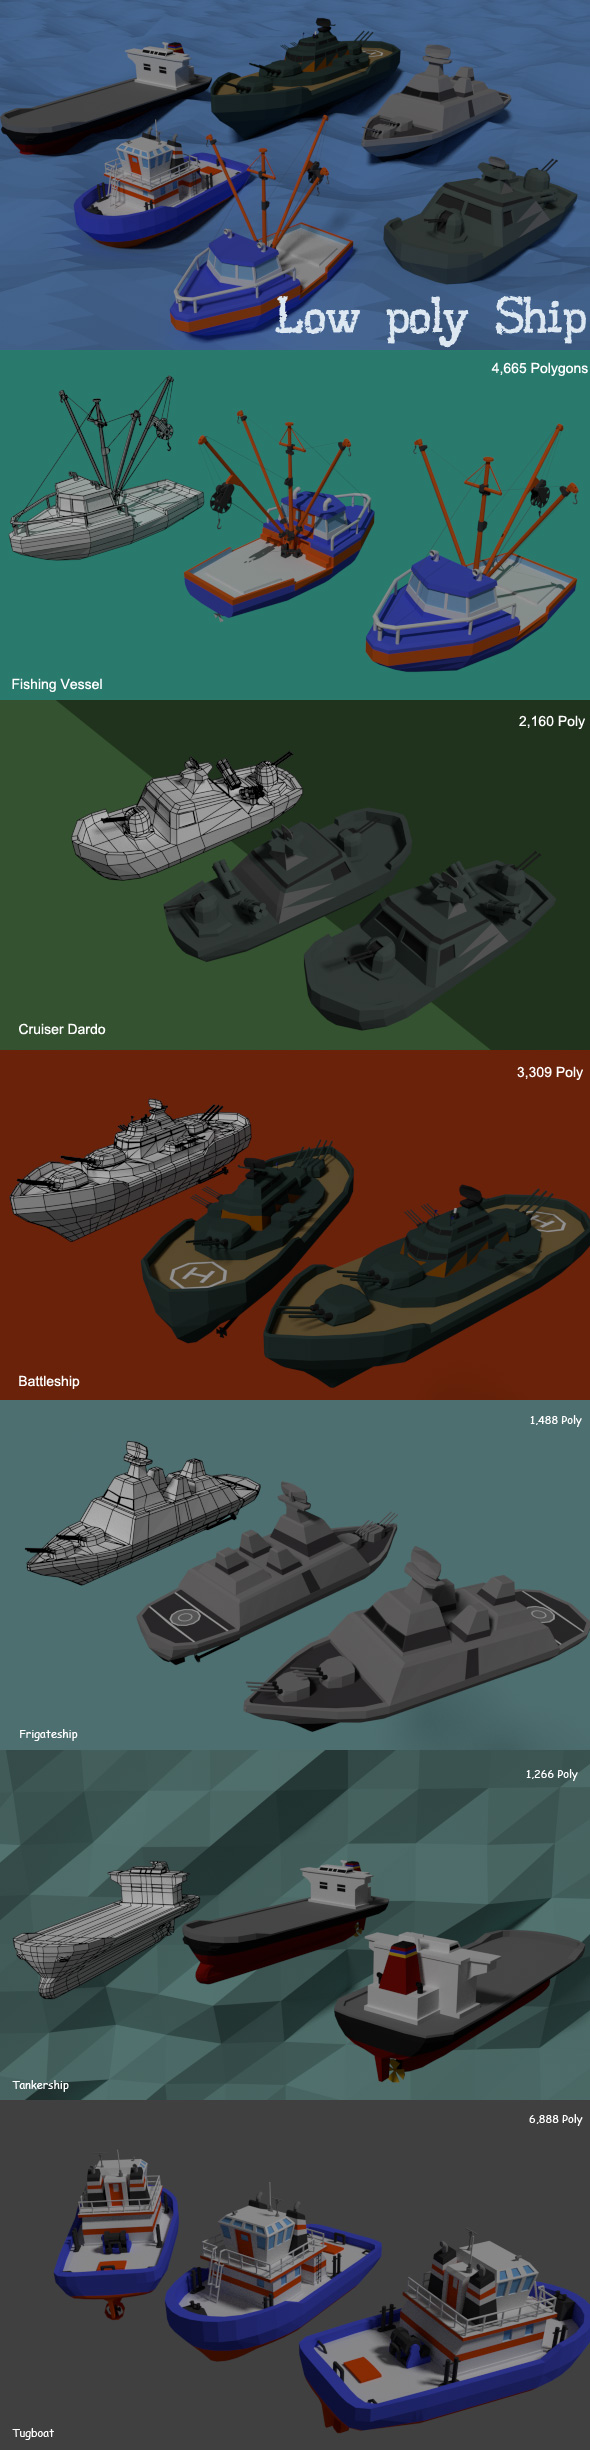 Low poly Ship - 3DOcean Item for Sale